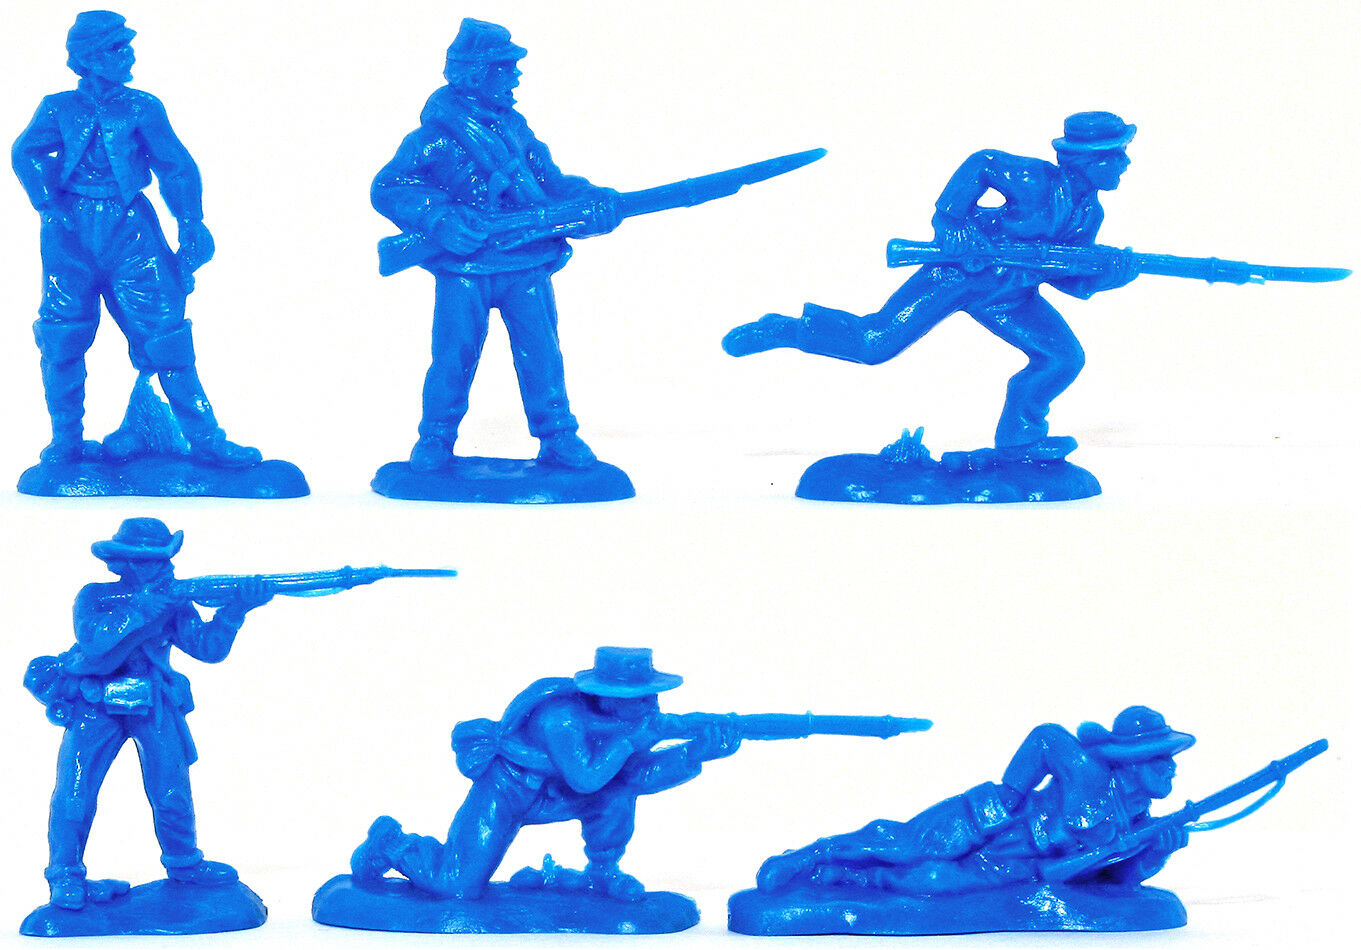 Replicants 12 Vets in mid bluee color - 54mm soft plastic - 2 of each pose